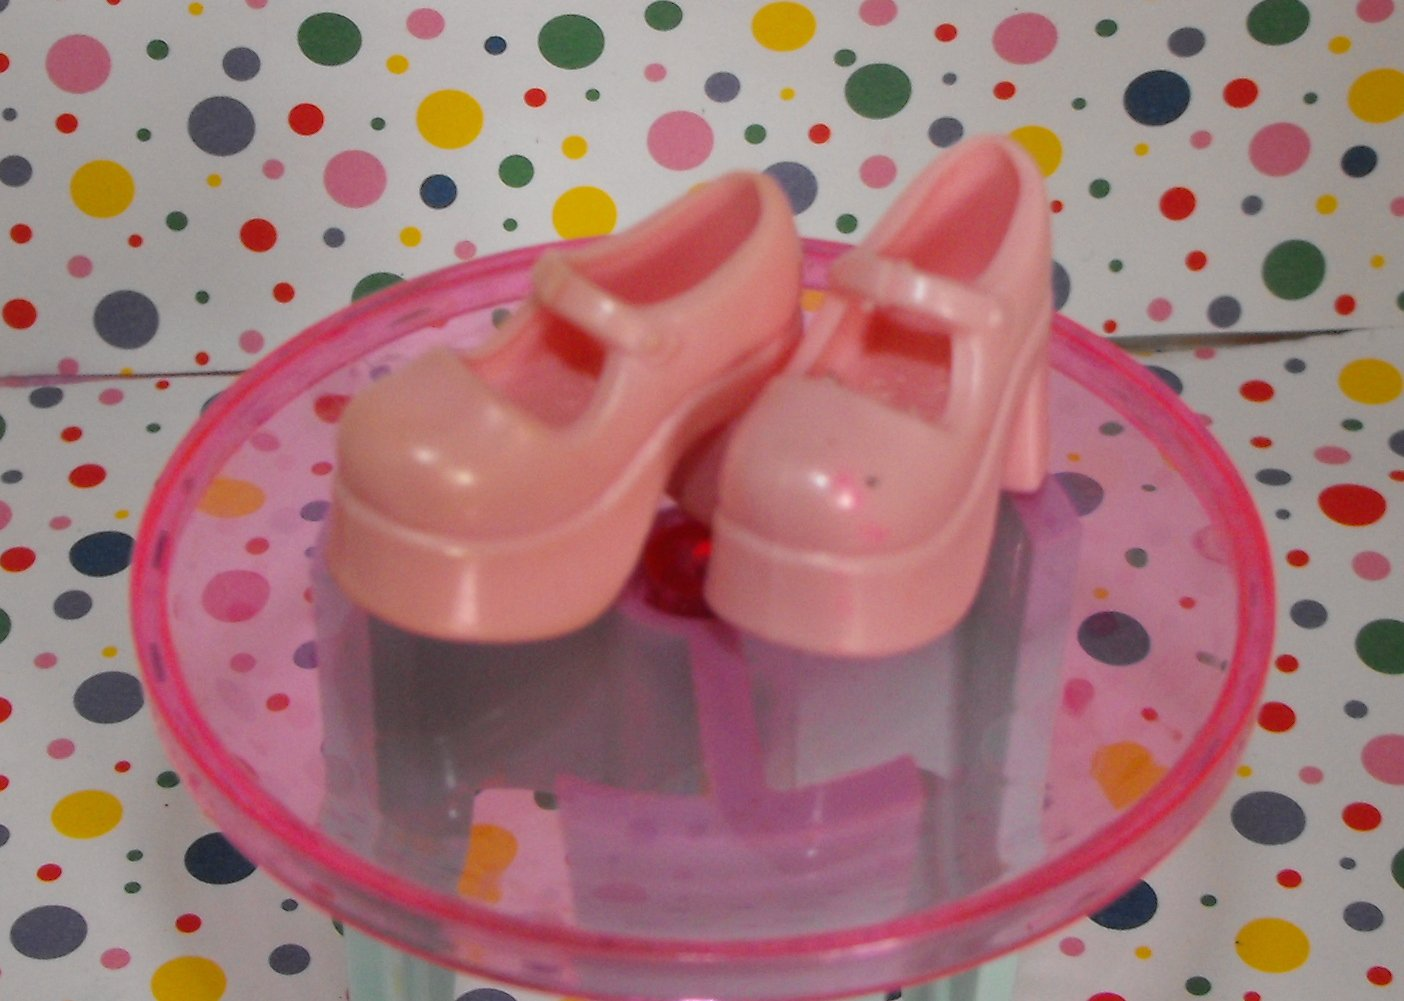 Barbie Pink Mary Jane Style Shoes Heels